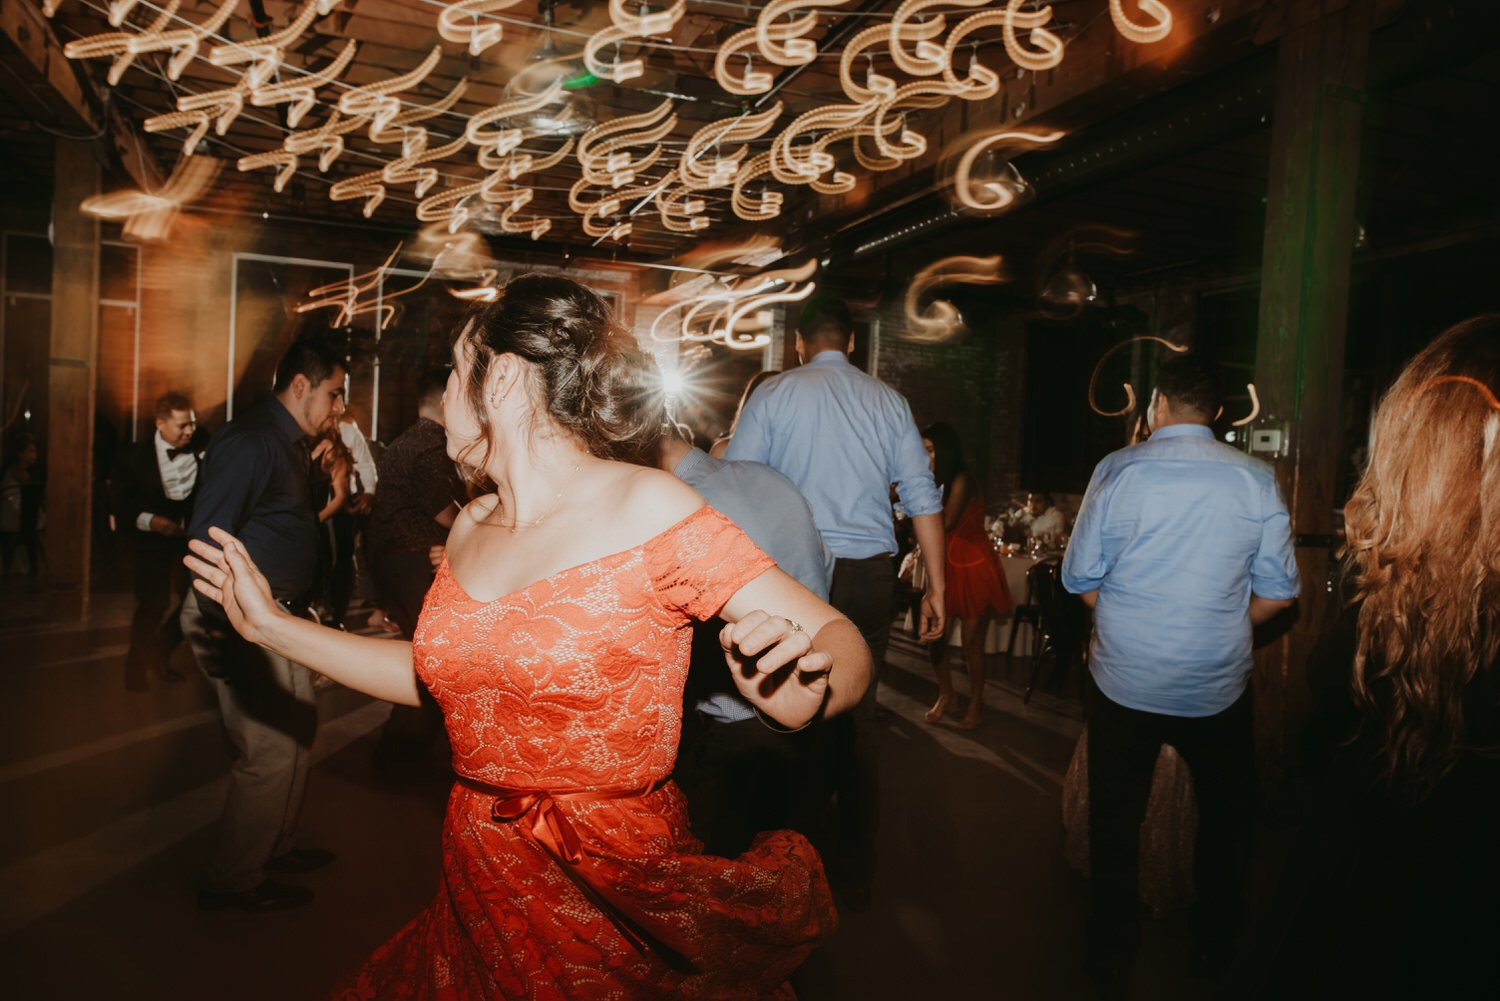 Chicago vow renewal, Chicago wedding photography, Architectural artifacts dance party, The Adamkovi